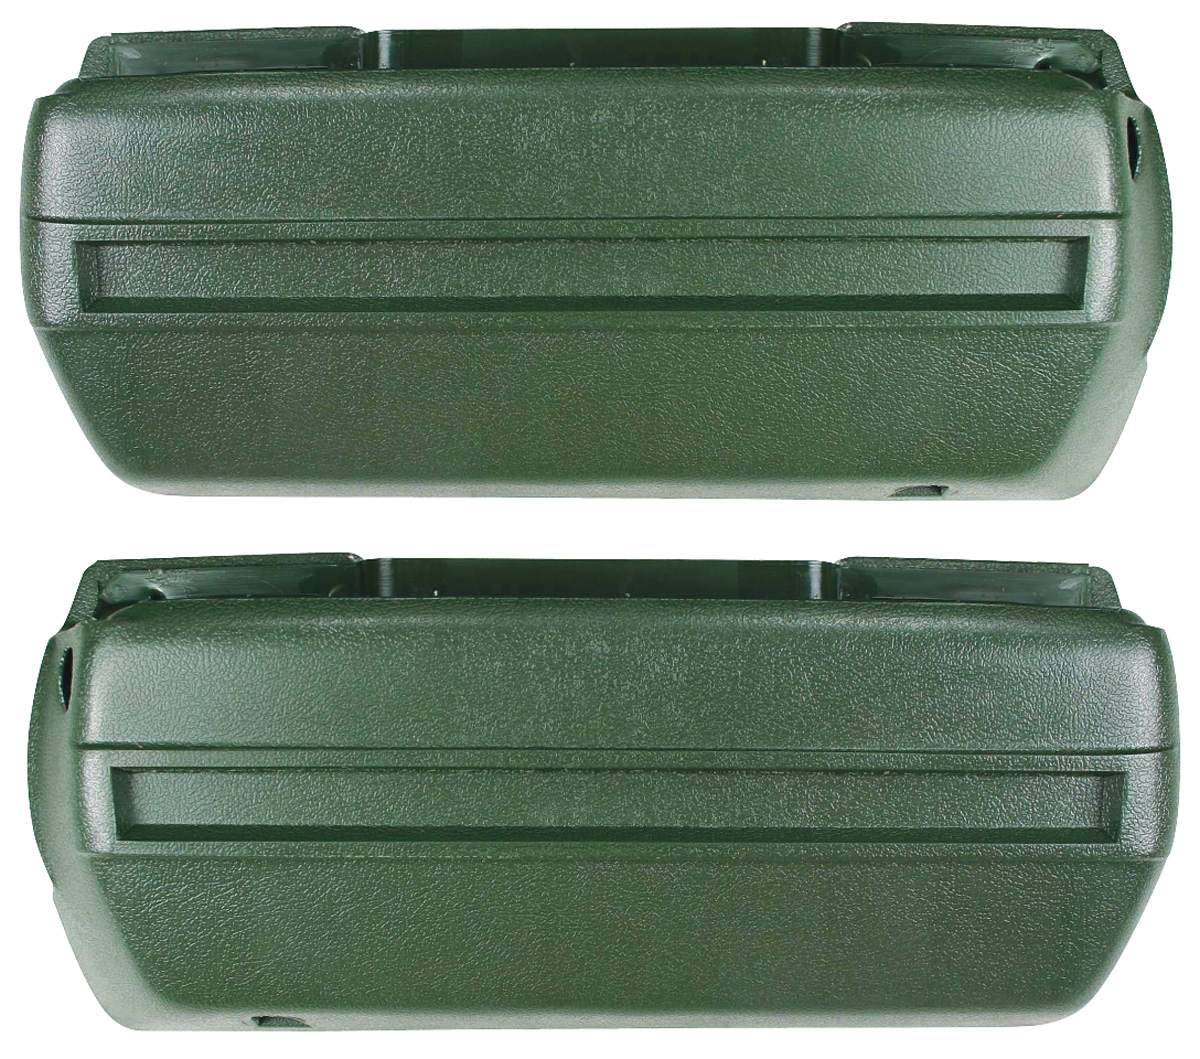 Photo of Armrest Bases, Plastic Injection-Molded Front